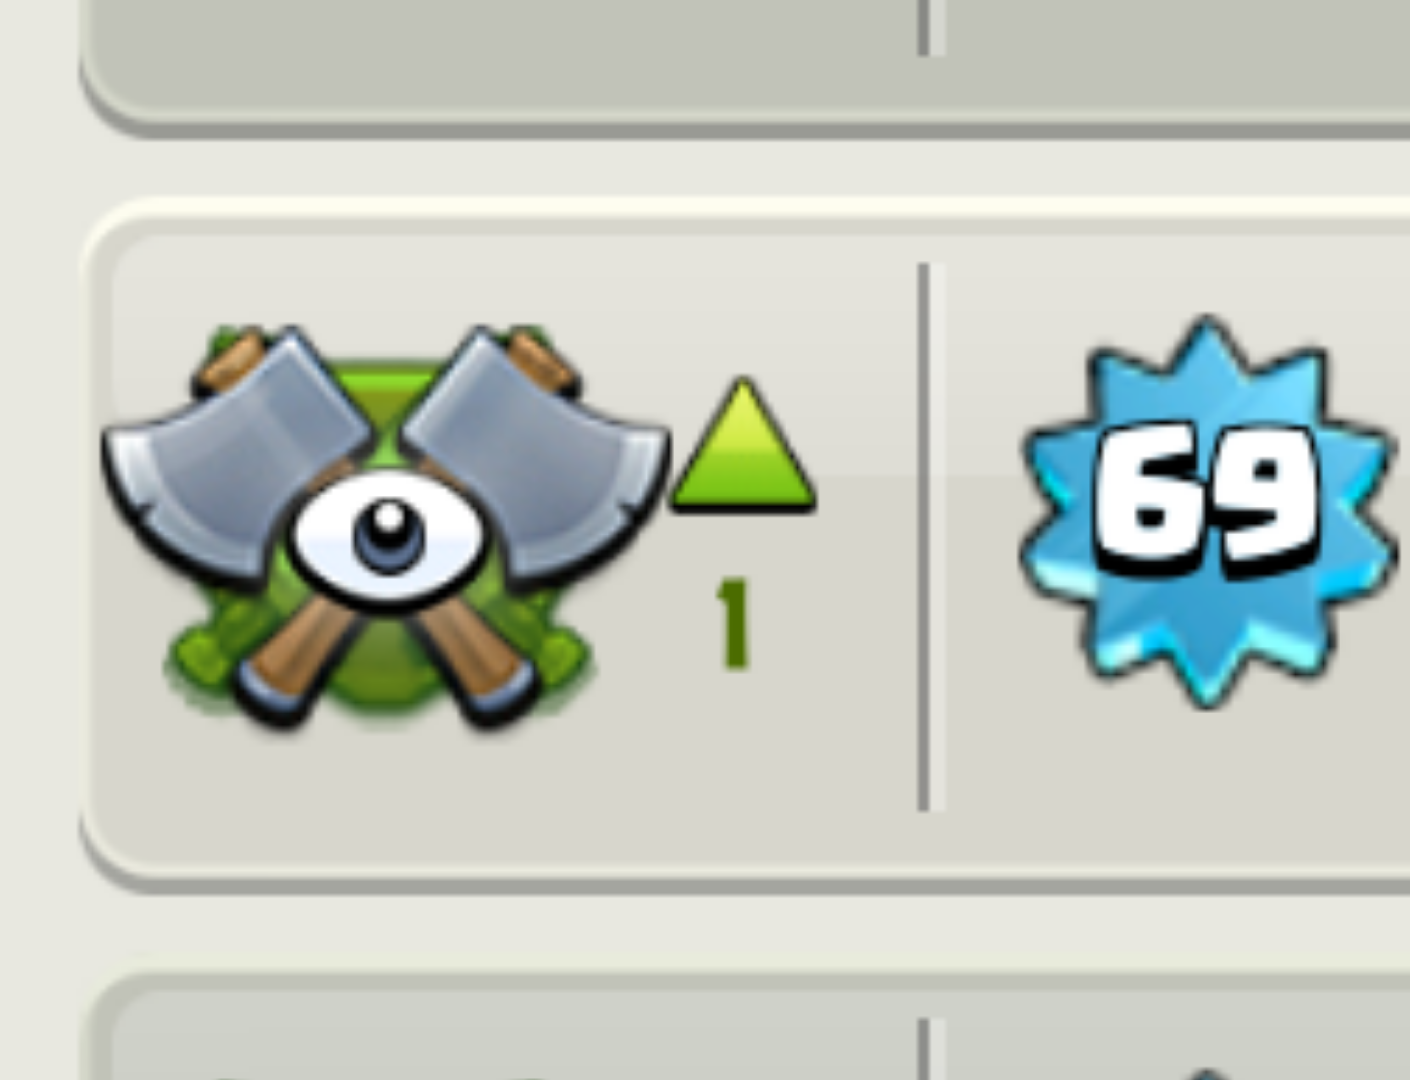 This looks so funny, especially when the eye blinks. Does it enable you to see a battle live?